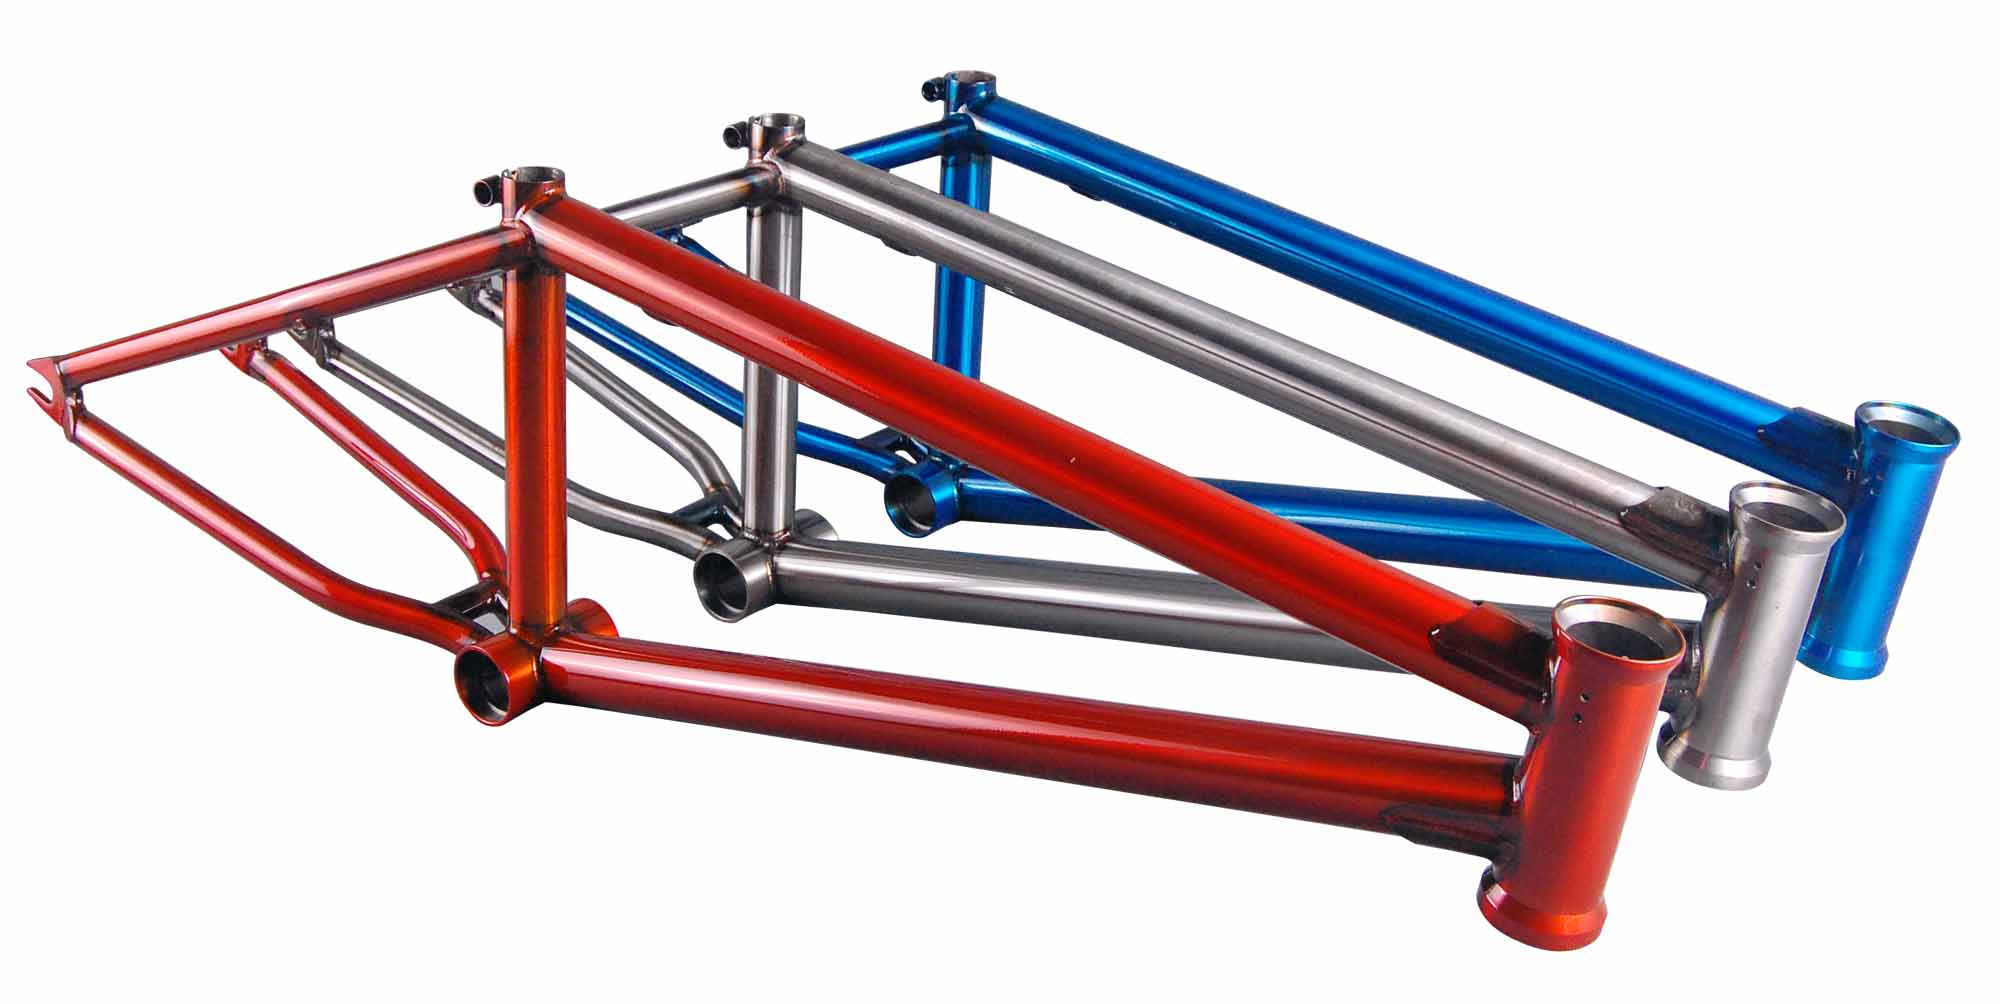 Clip3 Cromoly 4130 Butted Trans Color BMX Bicycle Frame